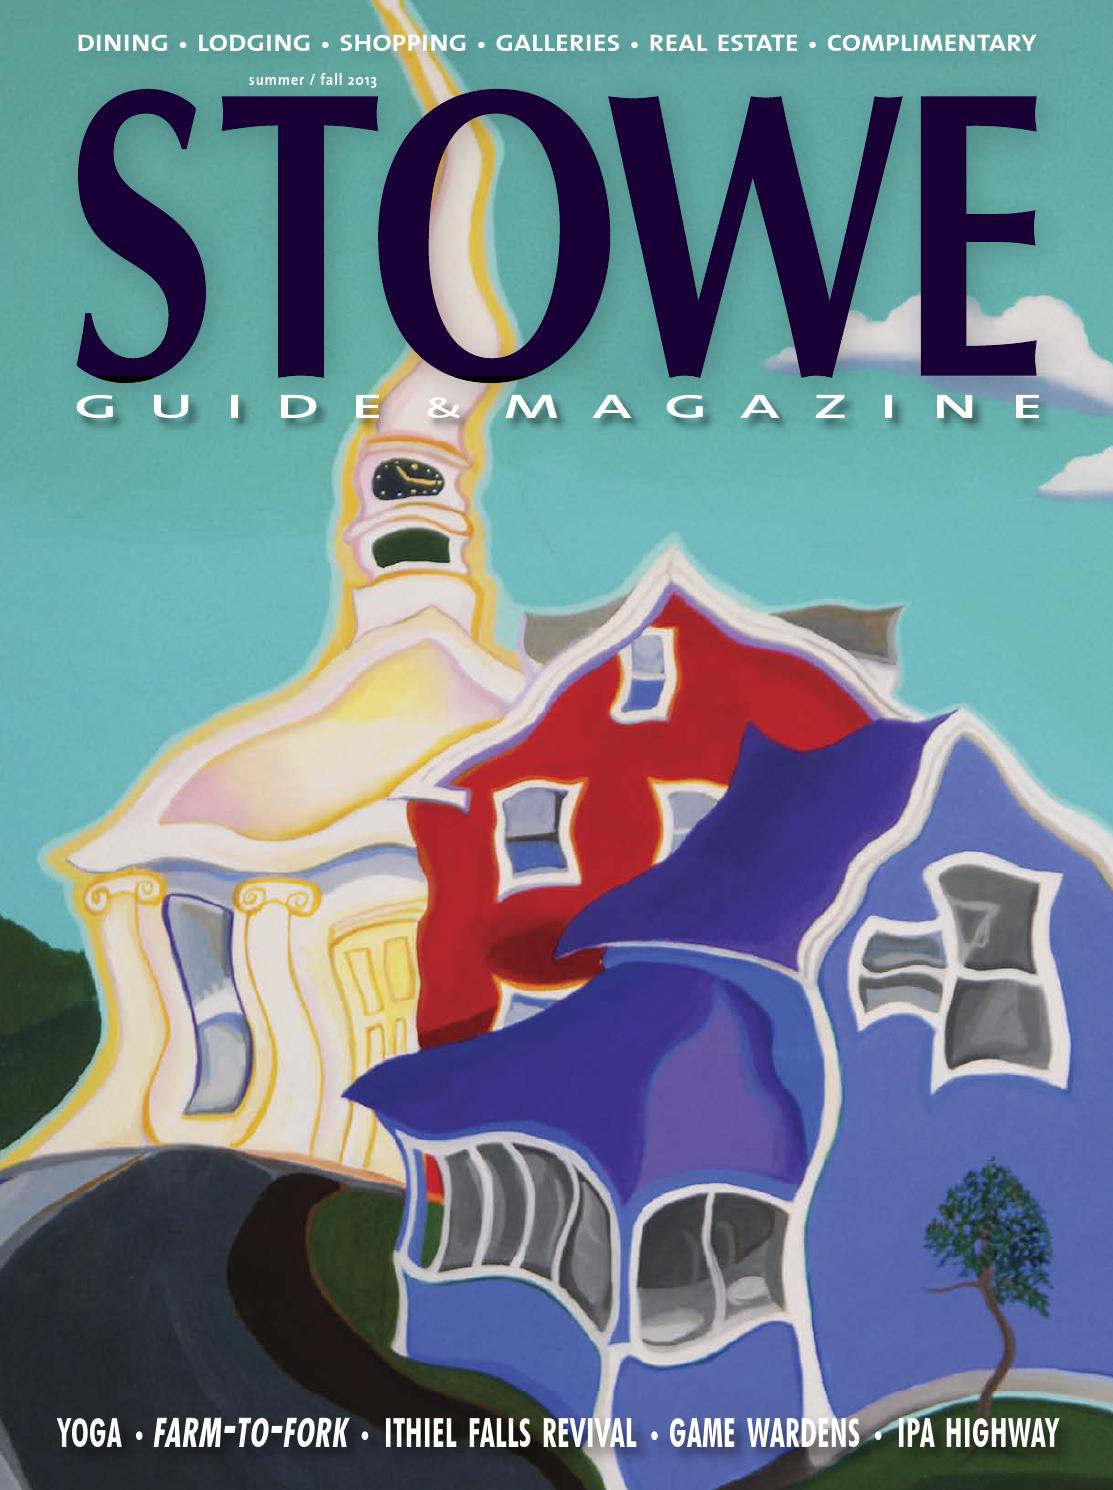 Stowe Magazine Summer / Fall 2013 by Stowe Guide & Magazine - issuu